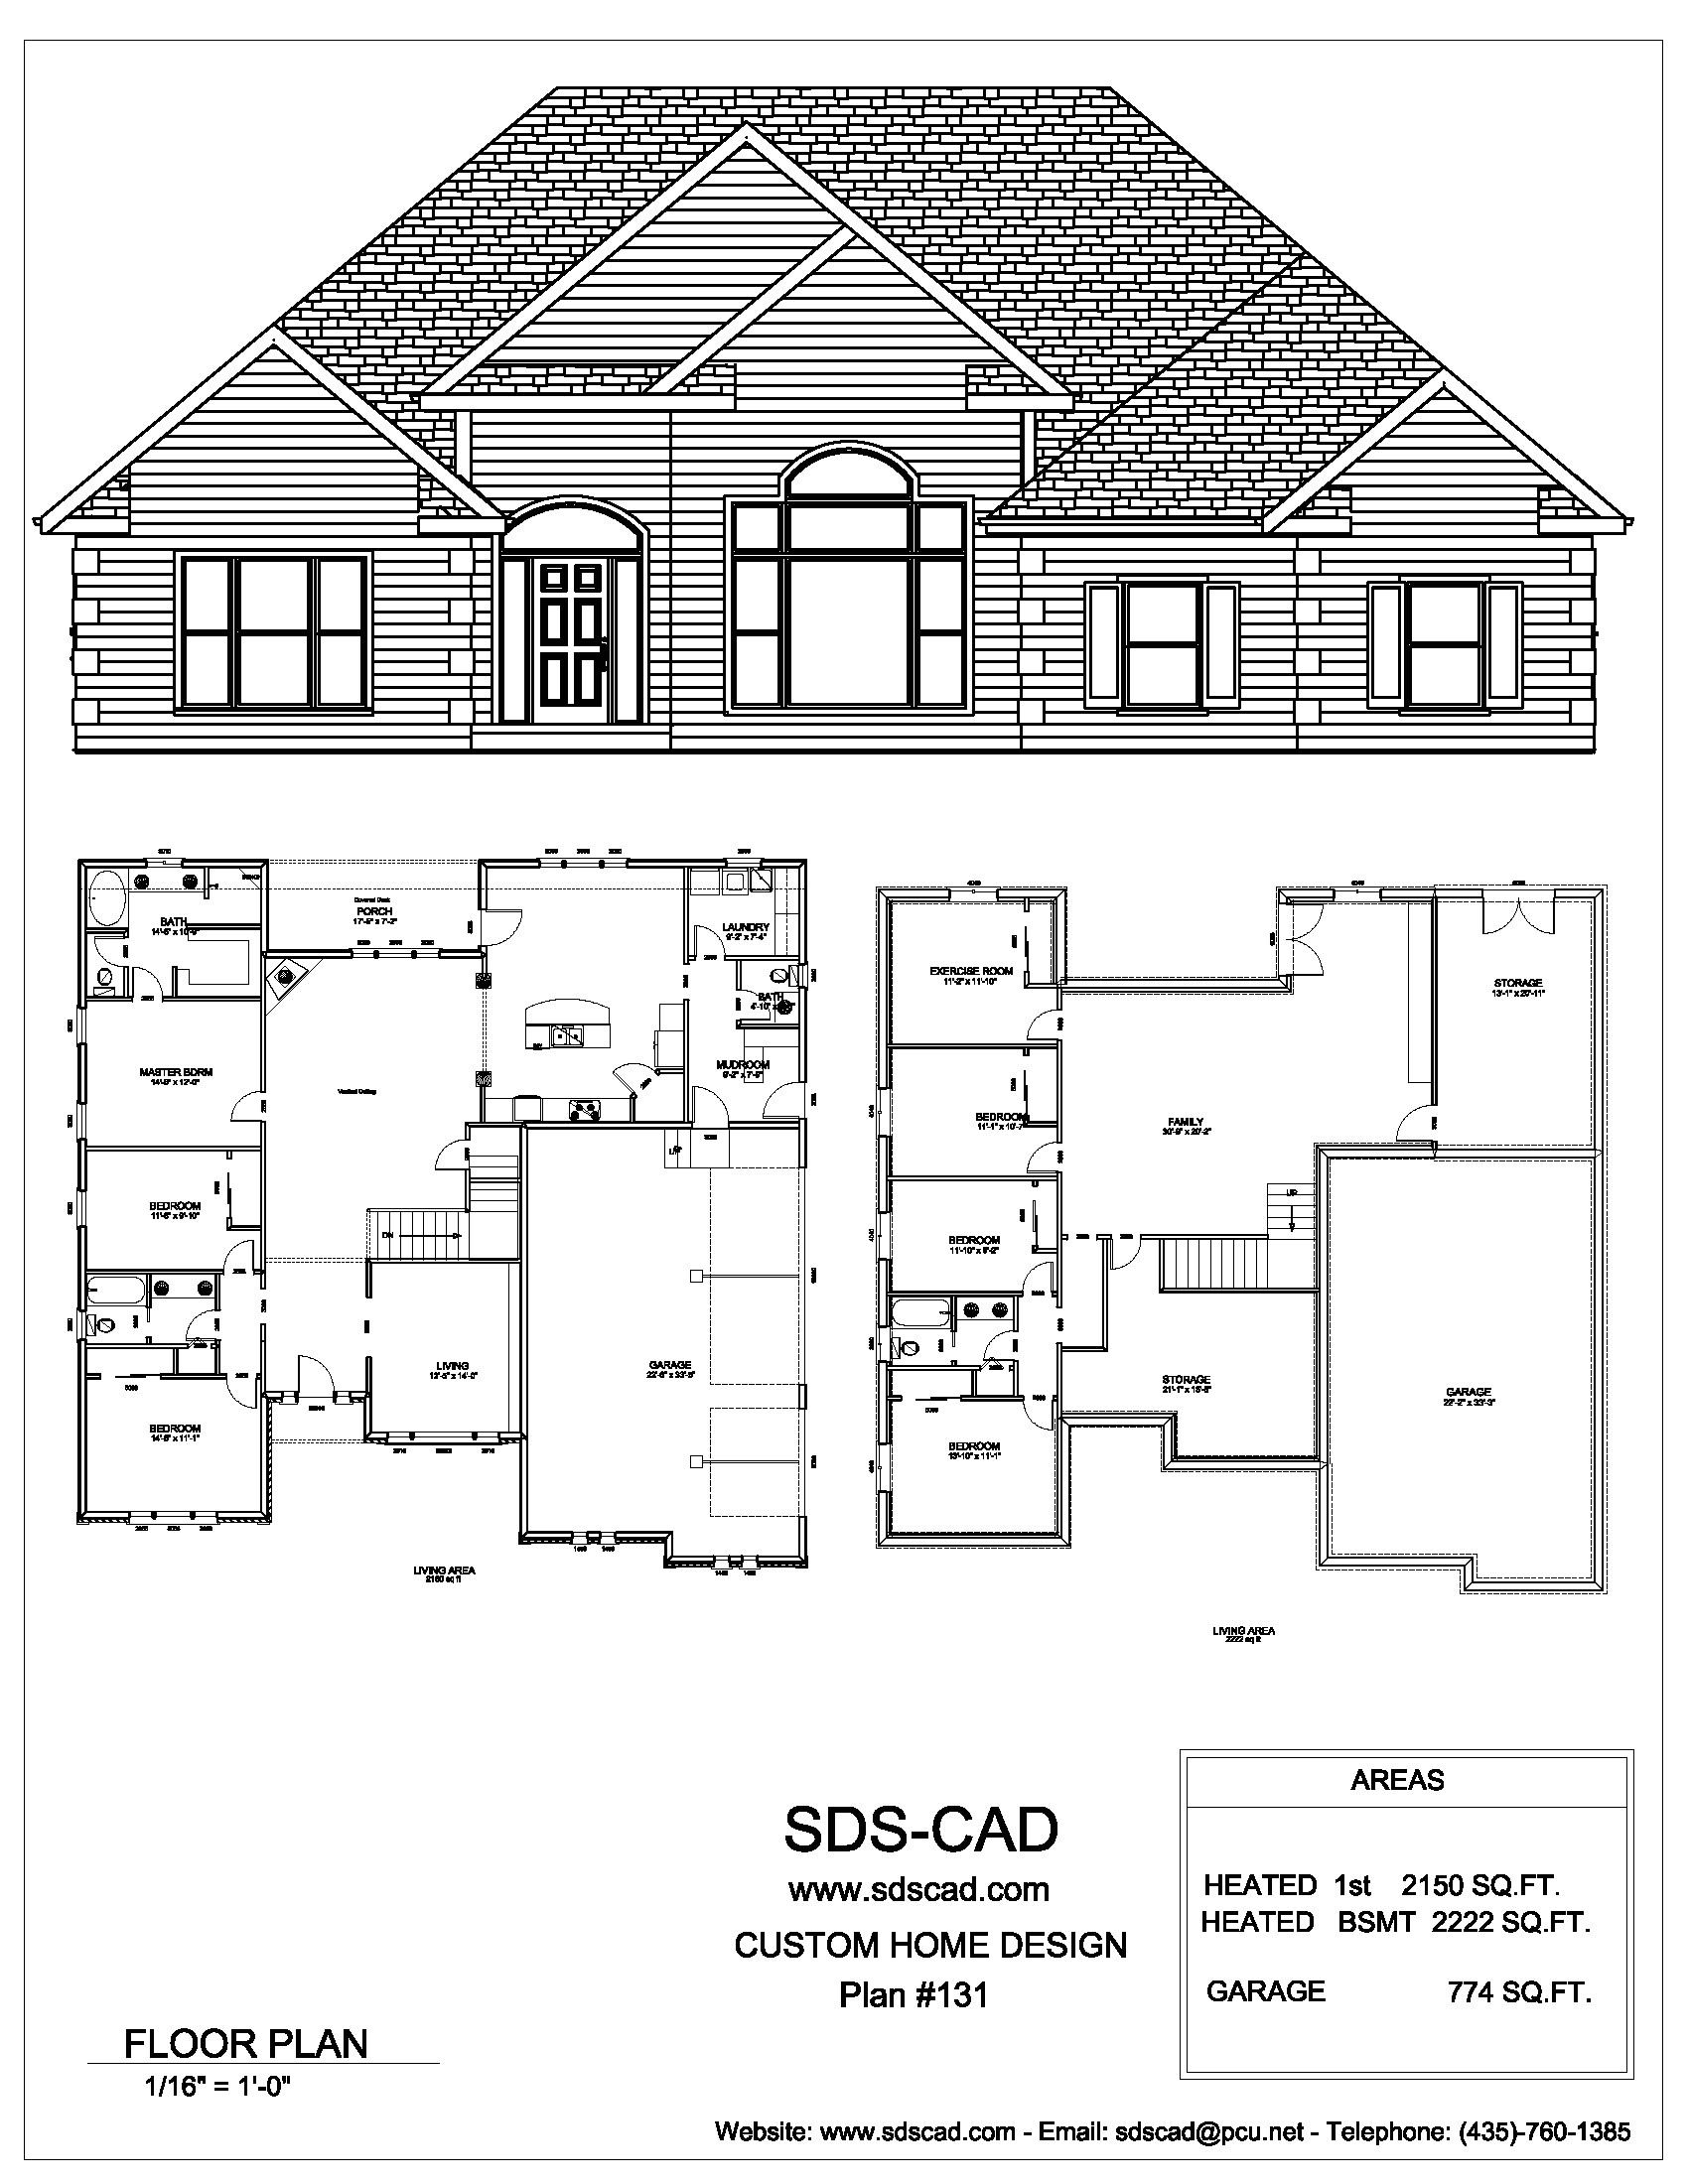 75 house plans blueprints construction documents from sdscad available for 5000 each